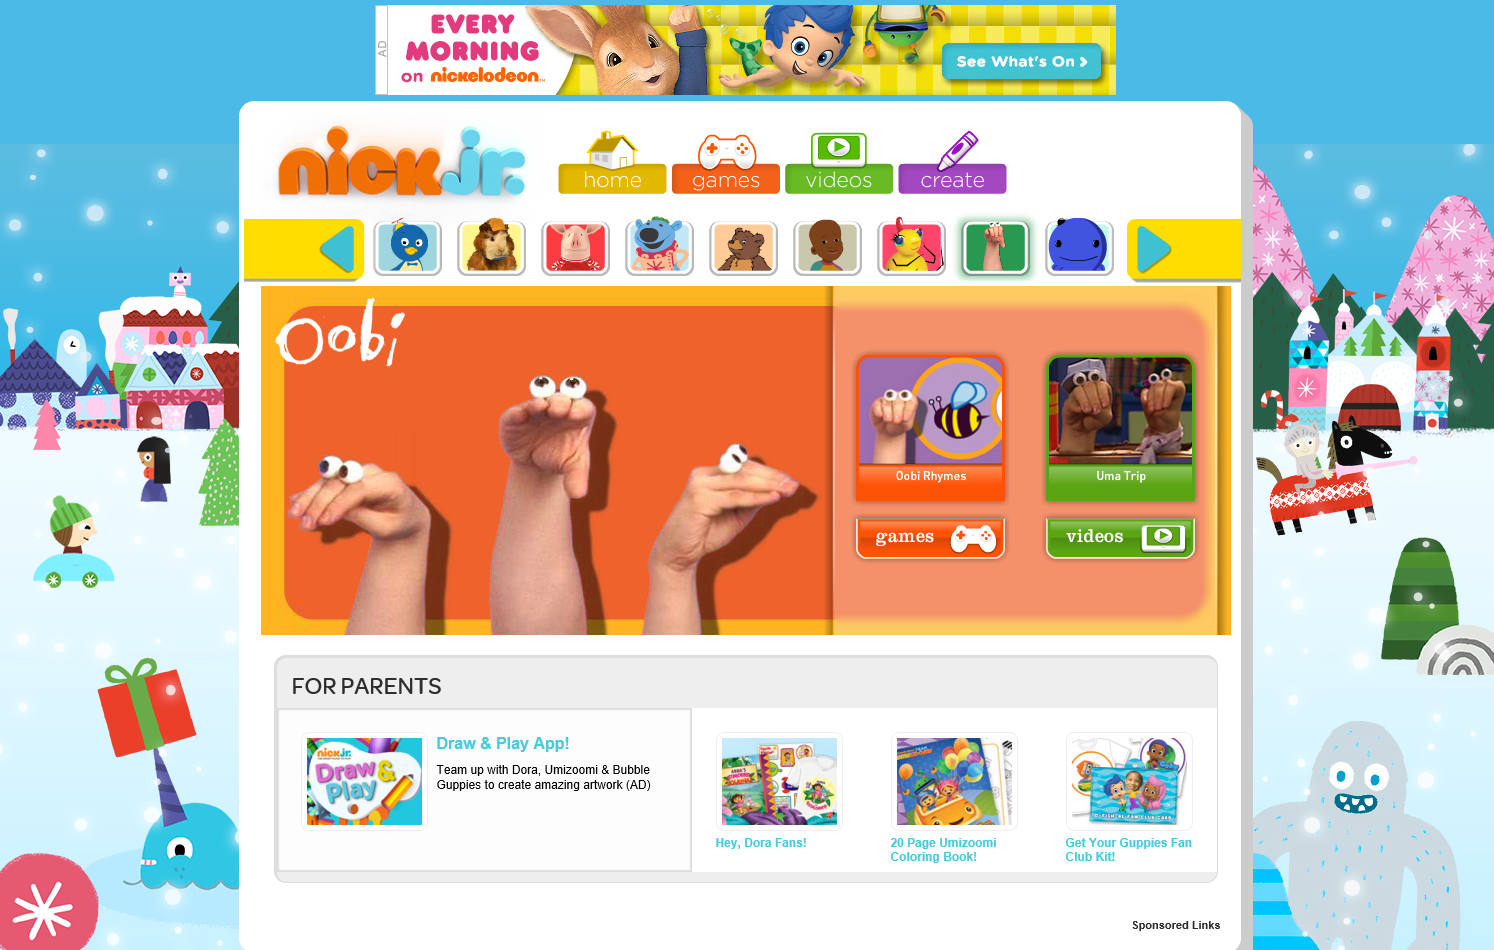 How to get nick jr app without cable